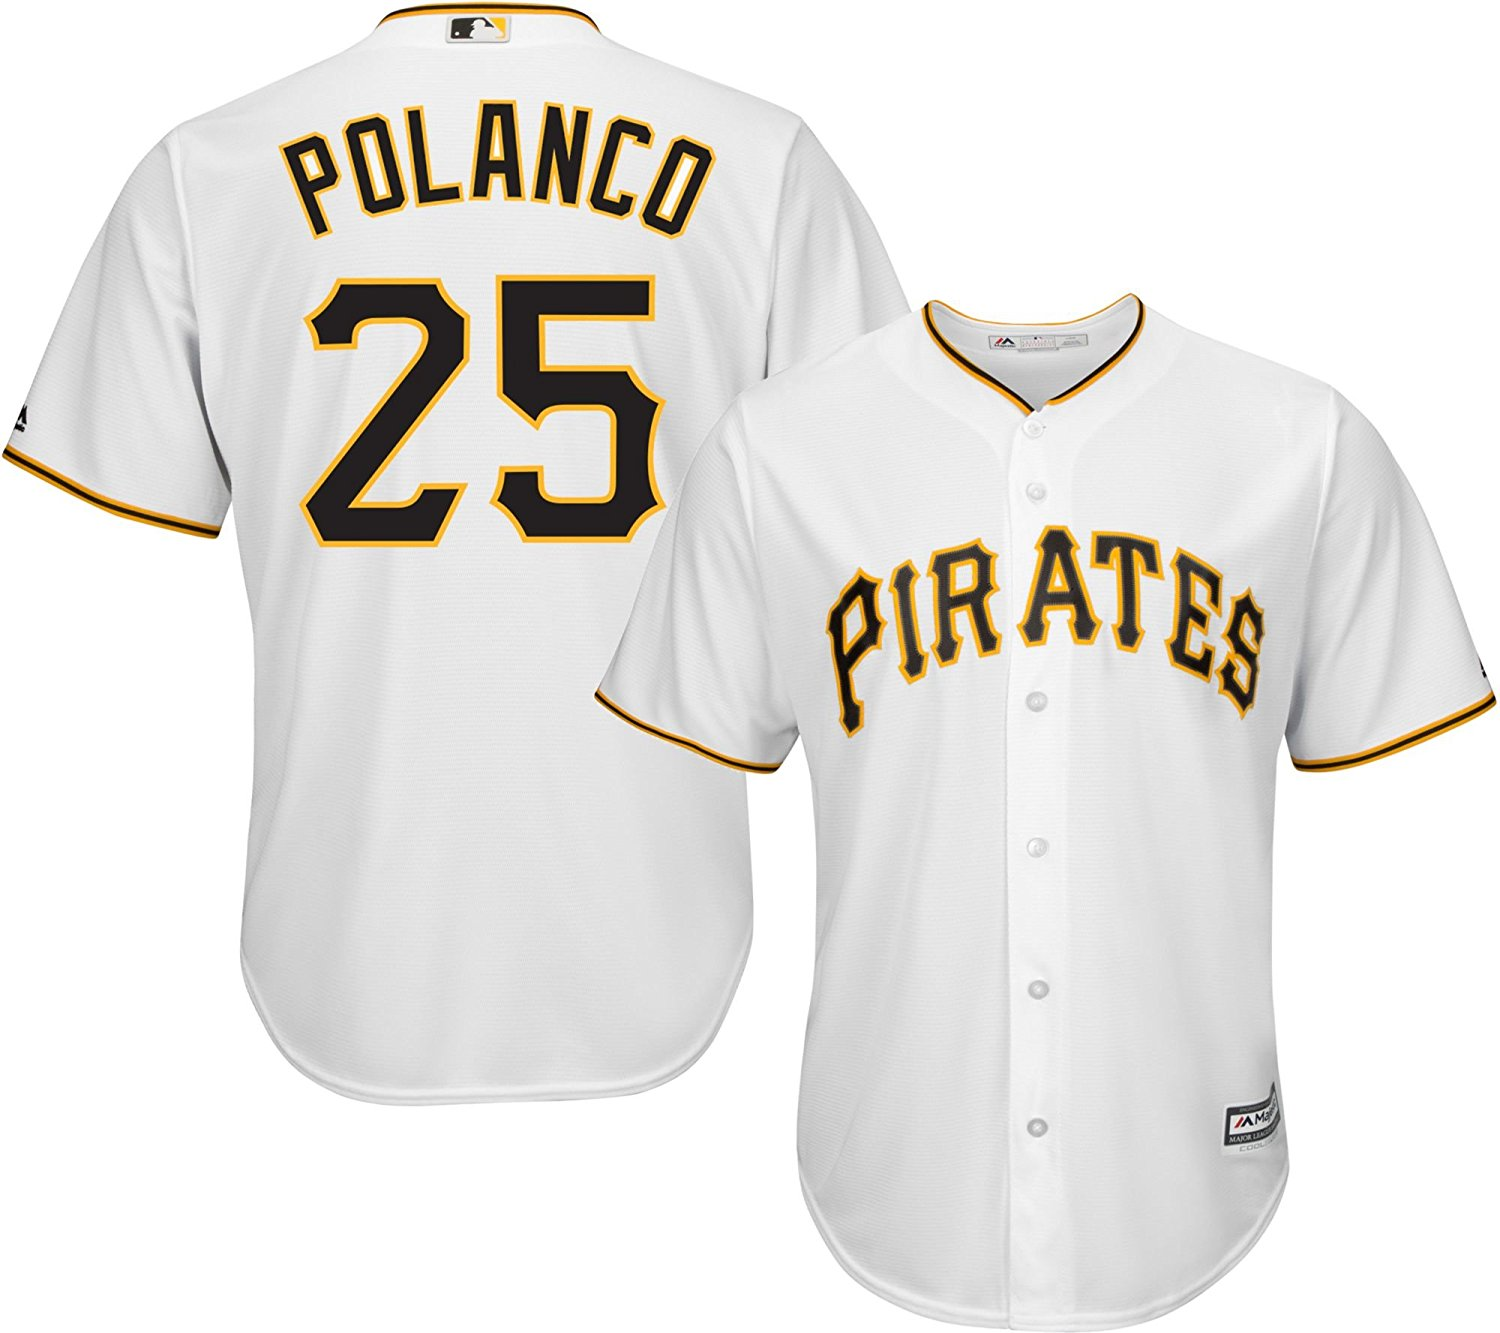 Gregory Polanco Pittsburgh Pirates White Youth Cool Base Home Replica Jersey